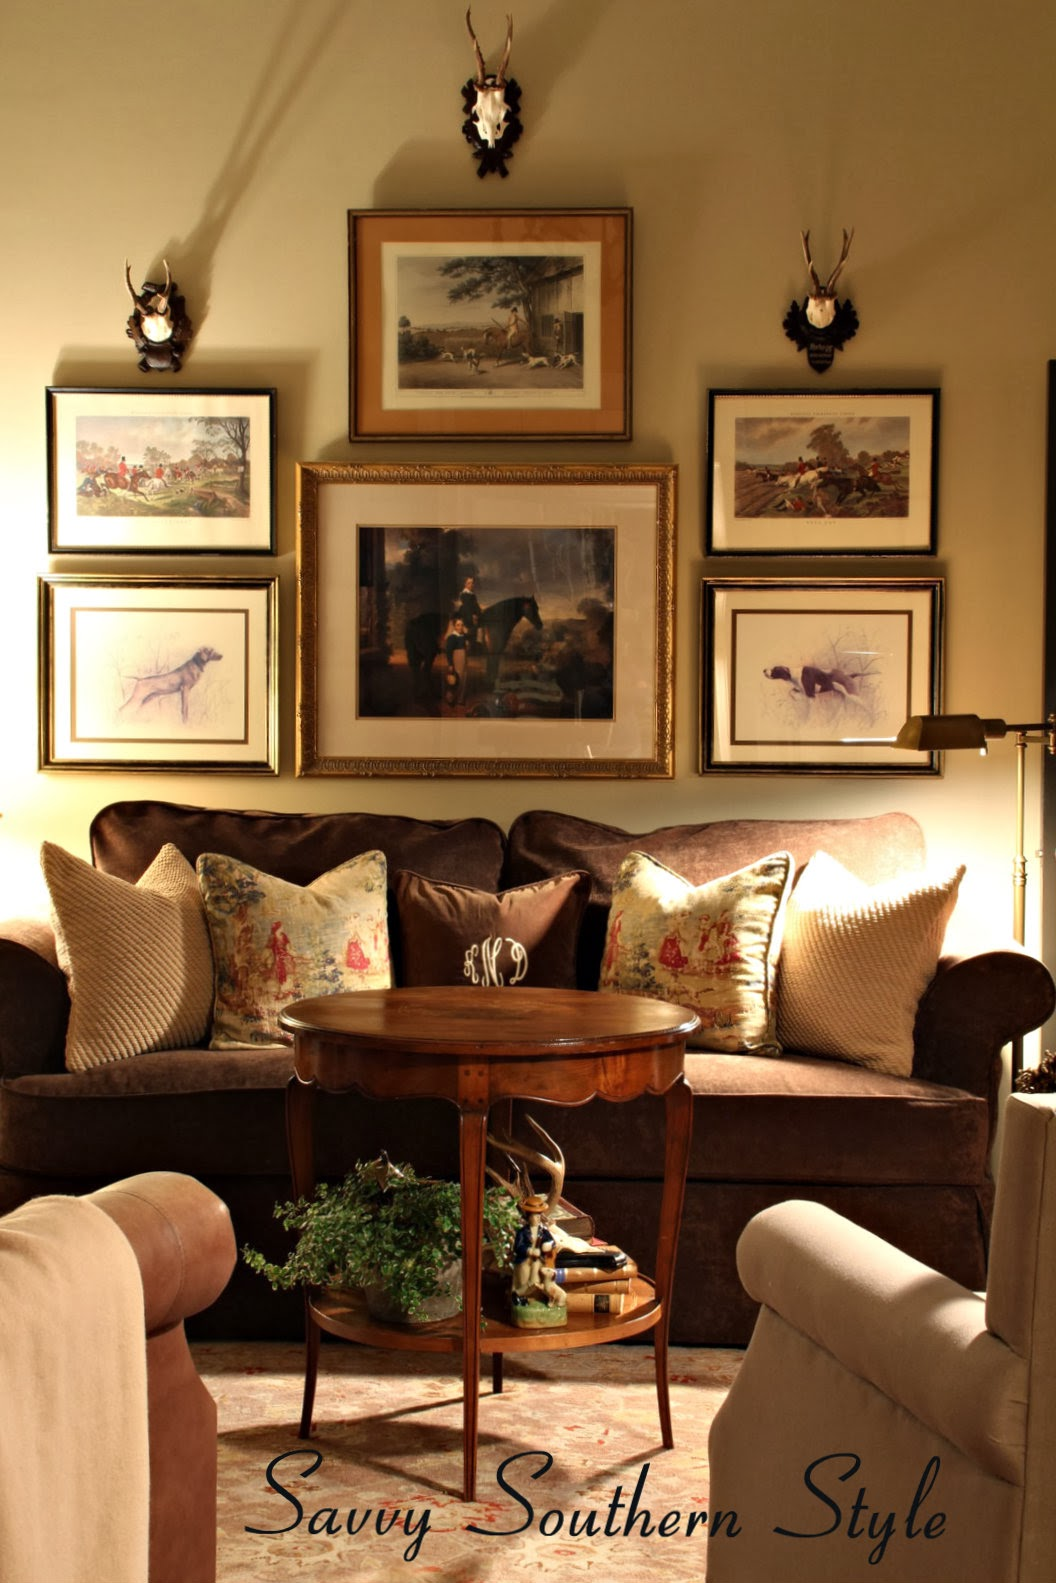 Savvy Southern Style : Decorating With.....Antlers